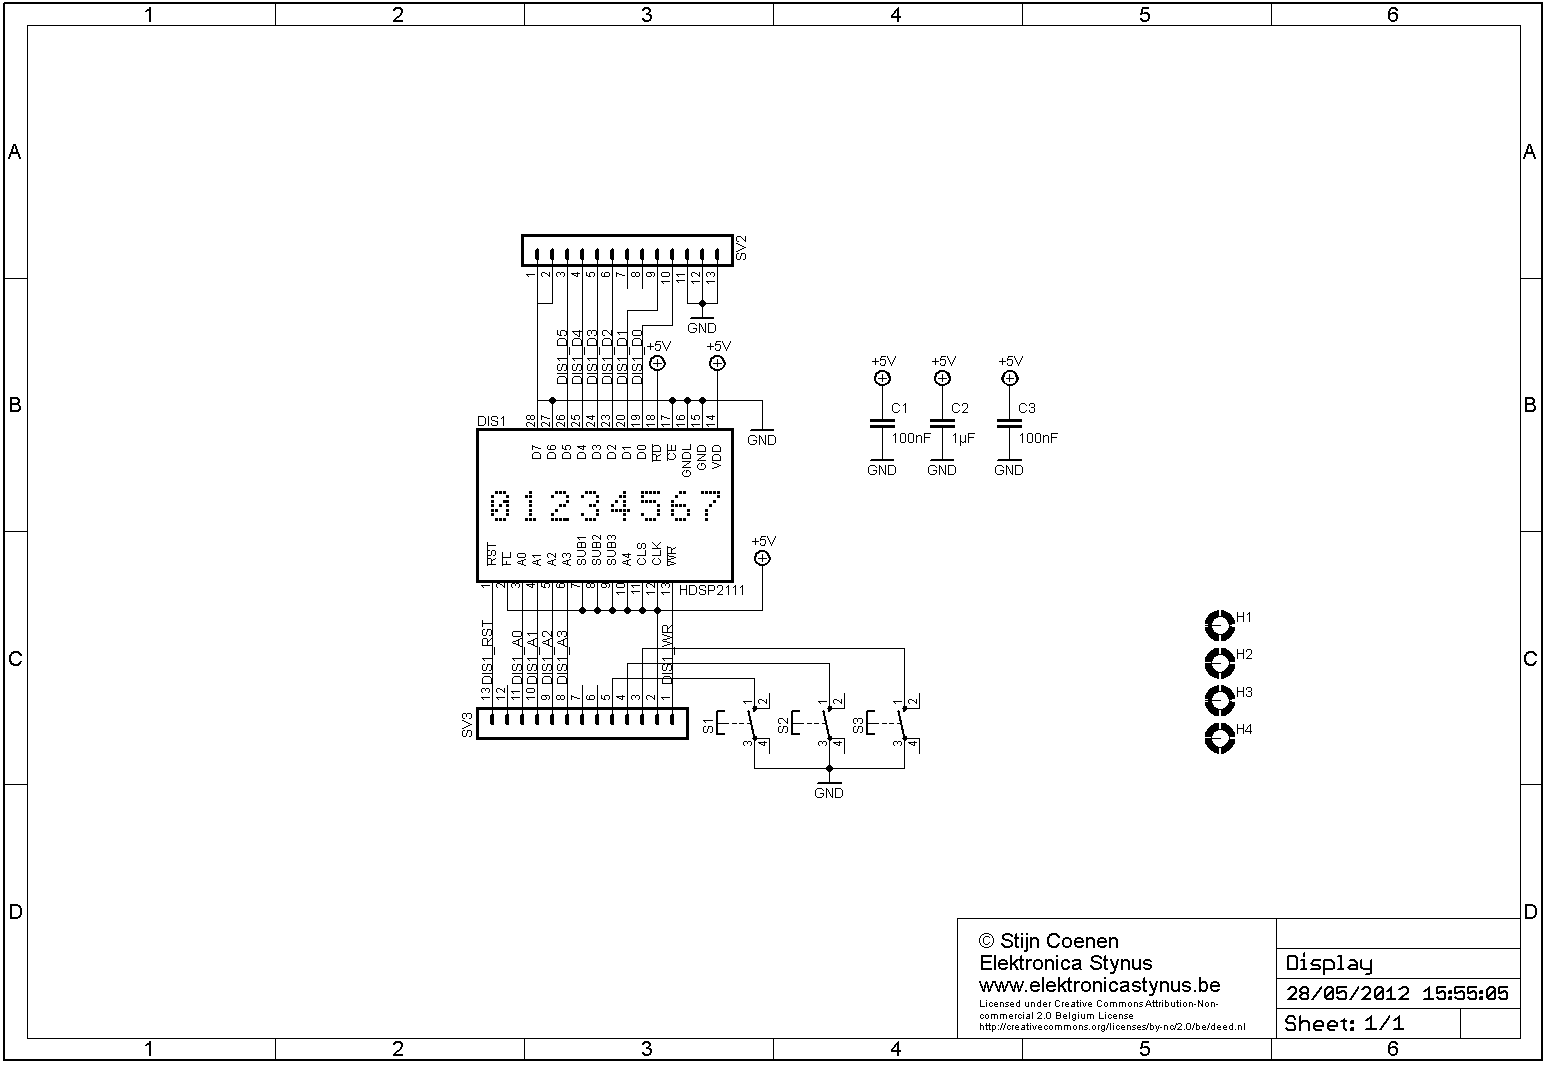 http://image.elektronicastynus.be/82/Schema_Display_Print.png